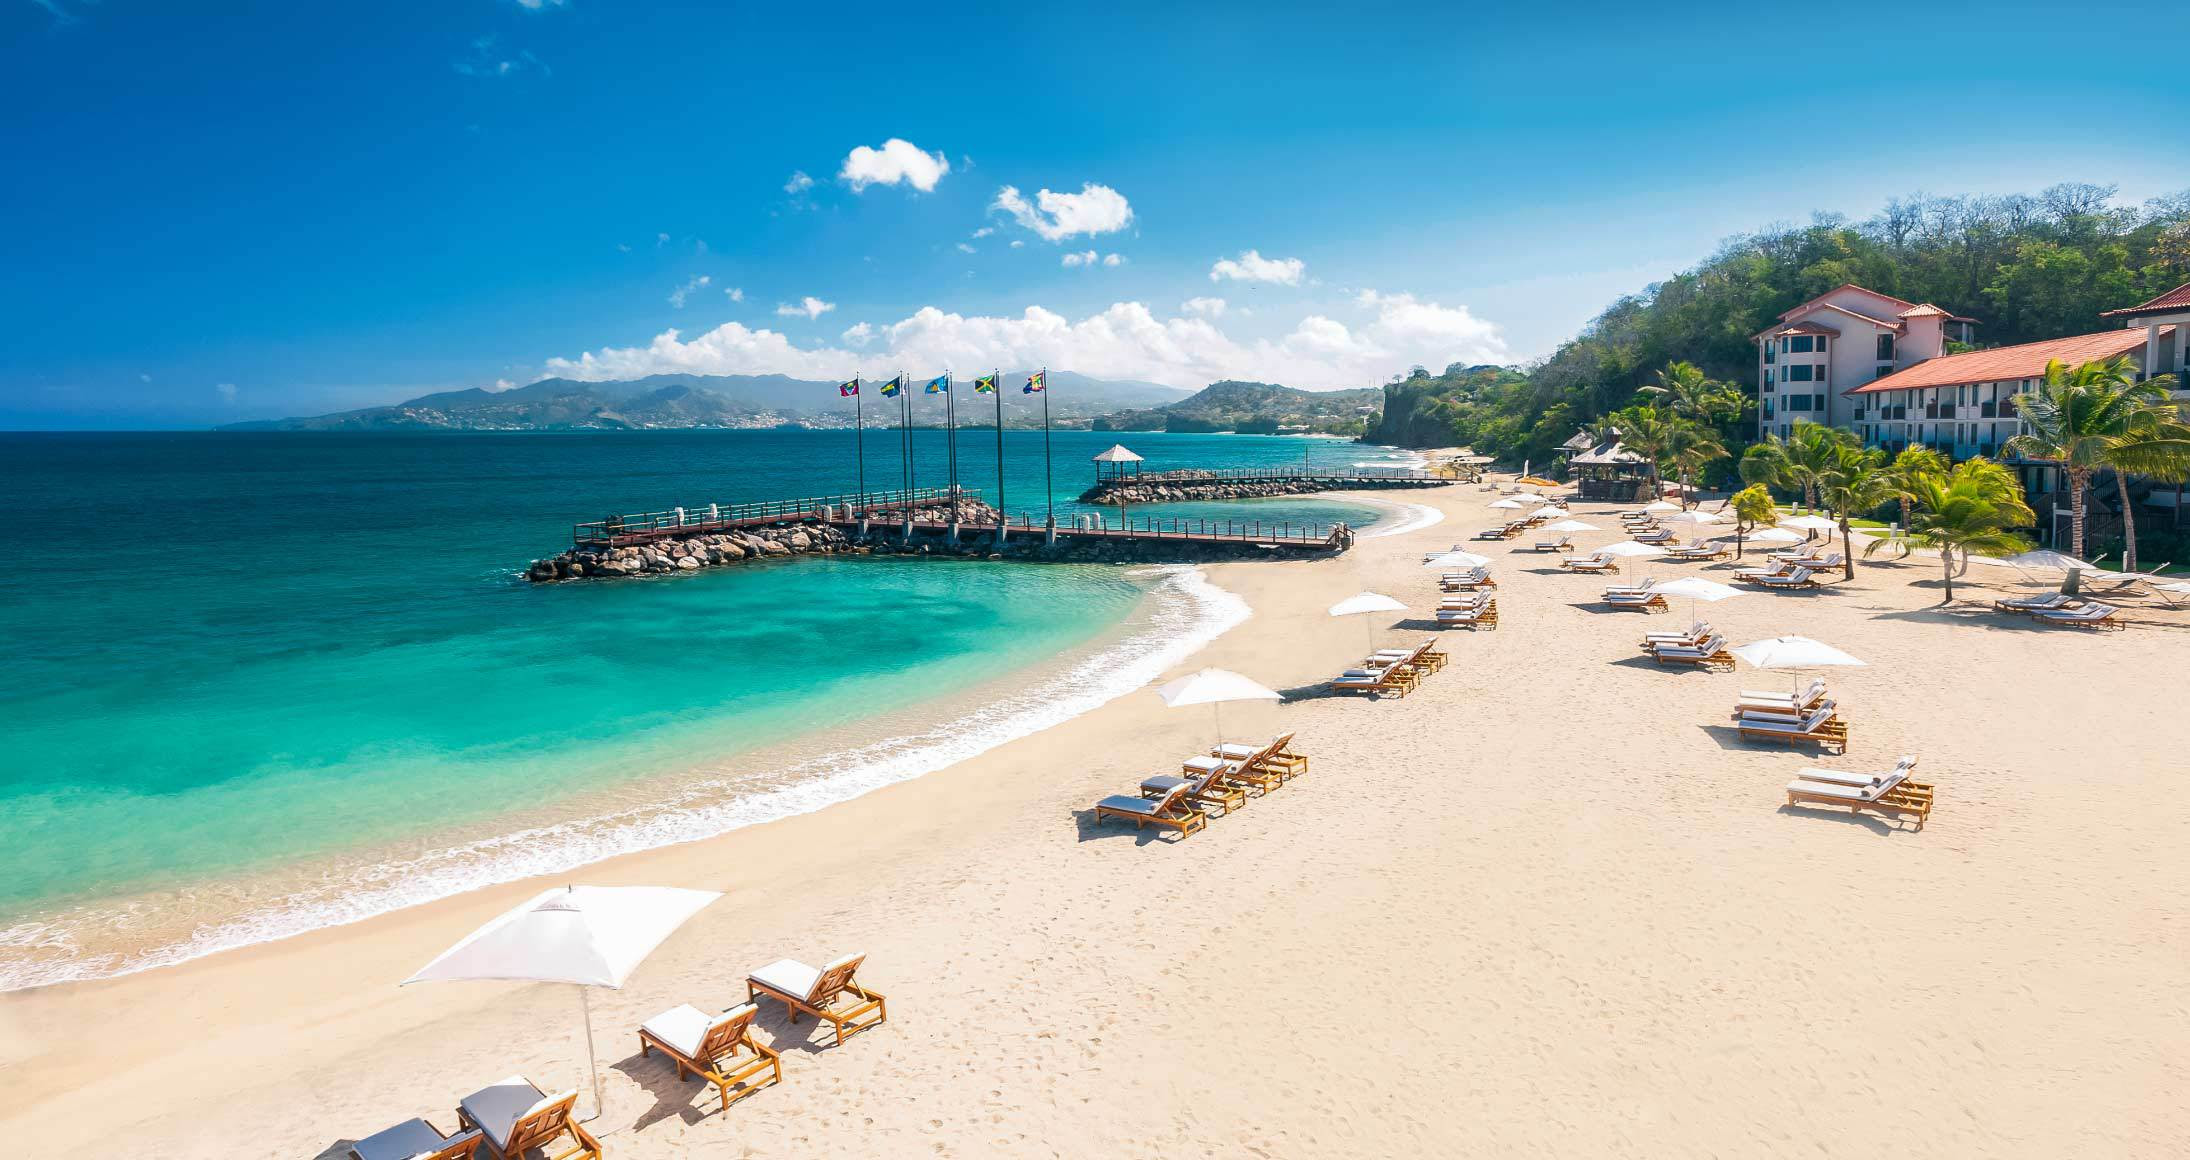 Sandals Grenada Luxury All Inclusive Resort in St George